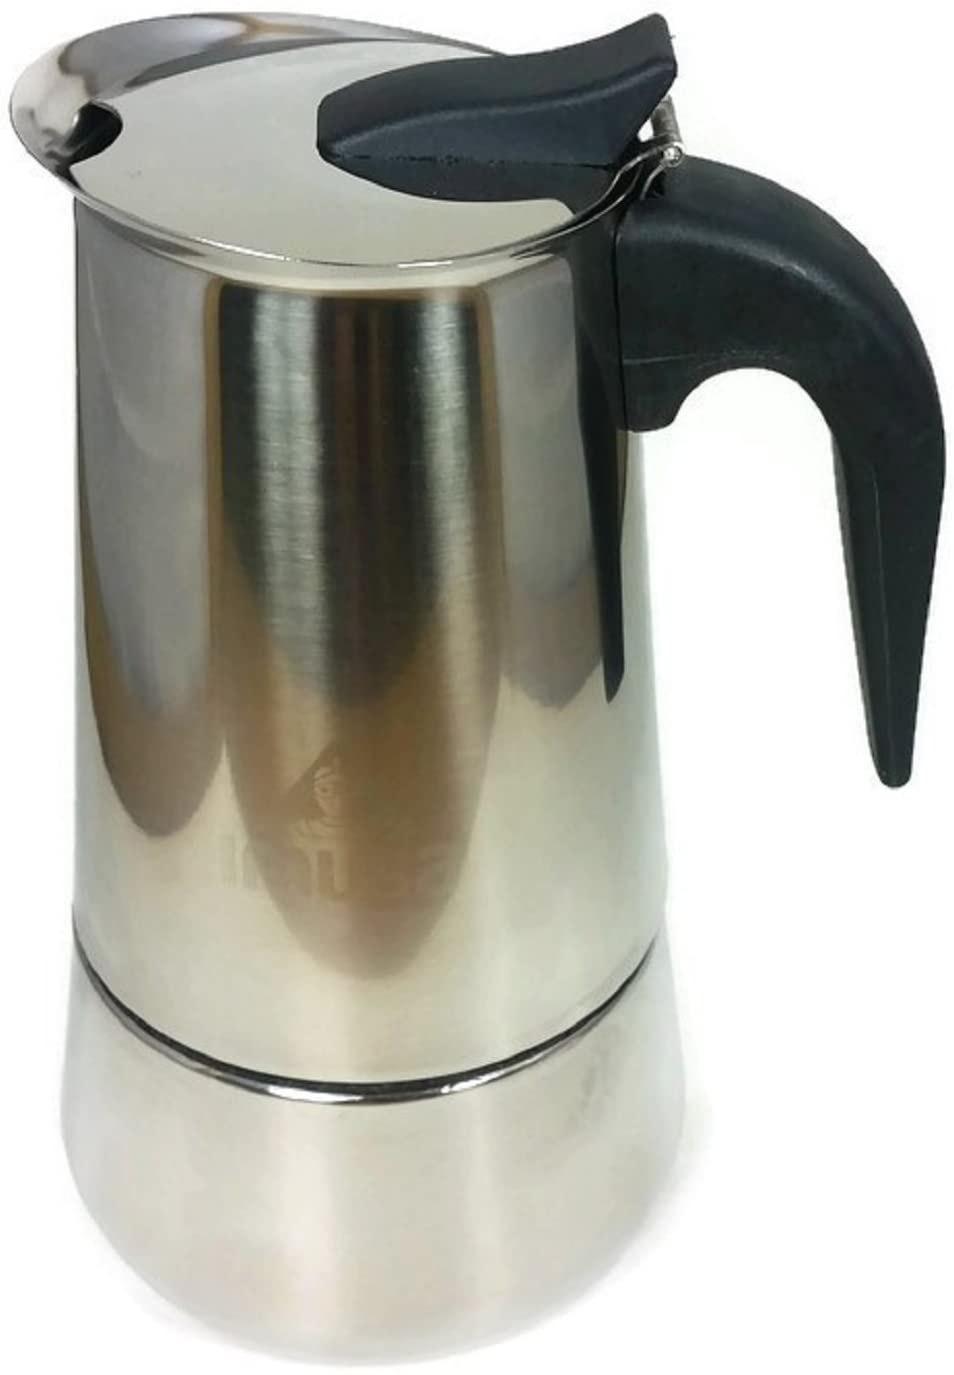 Imusa Espresso Coffee Maker Stainless Steel (2 cups)